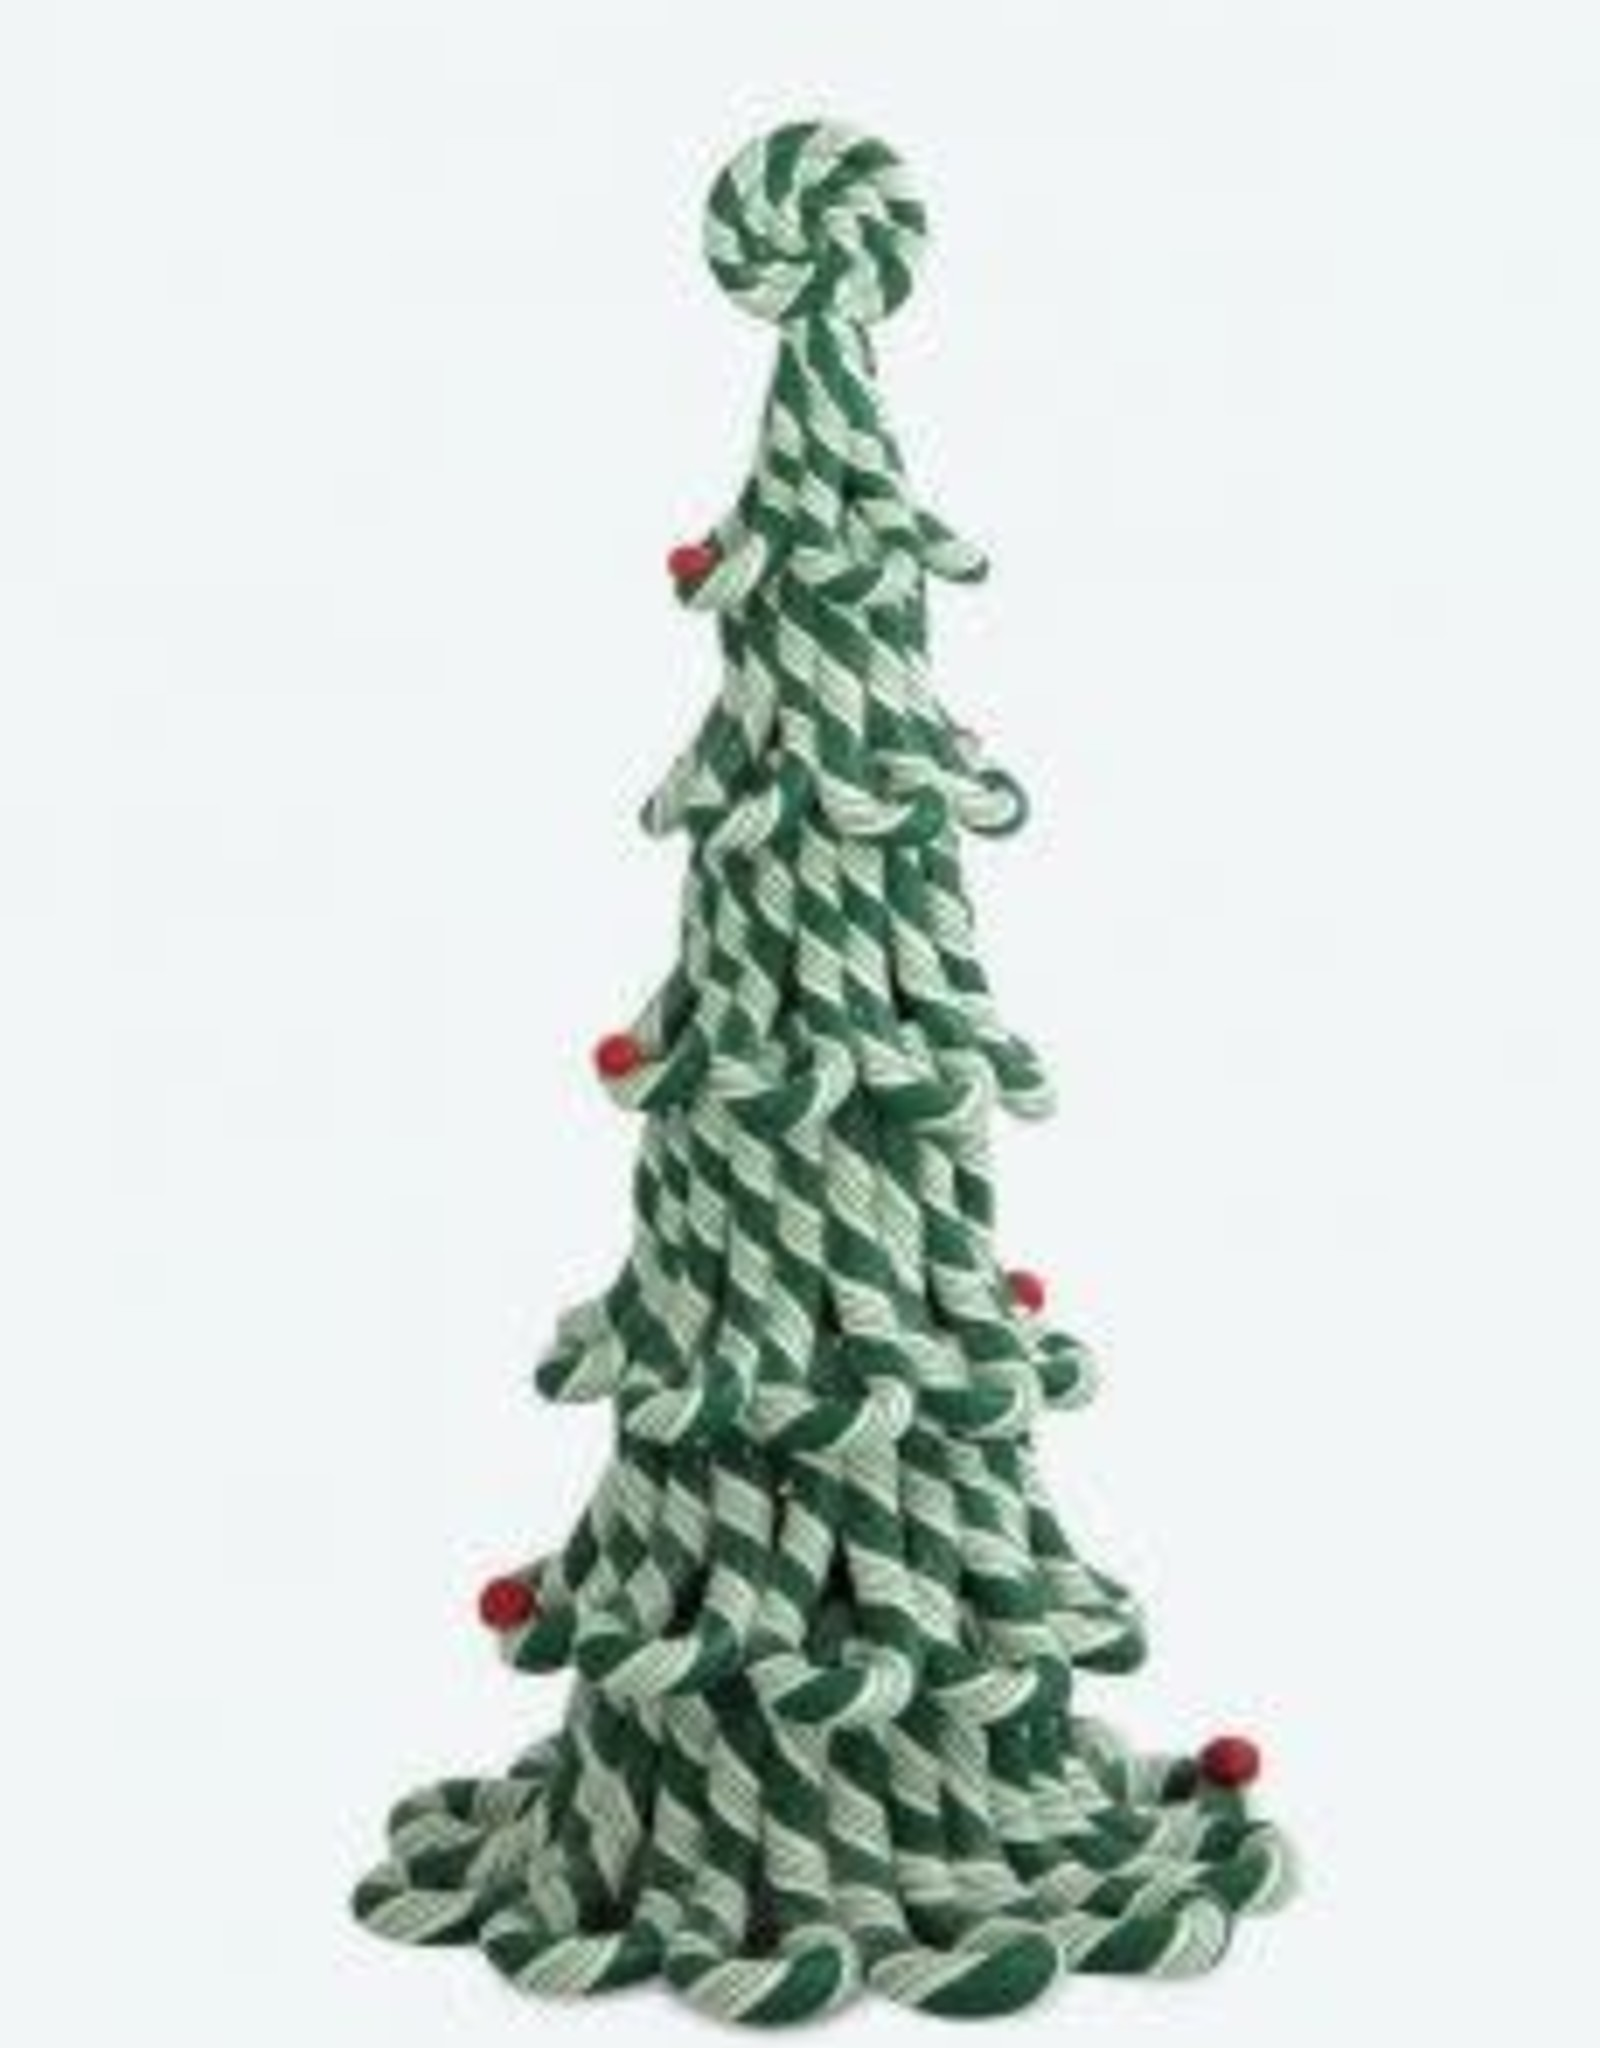 Green Candy Cane Tree